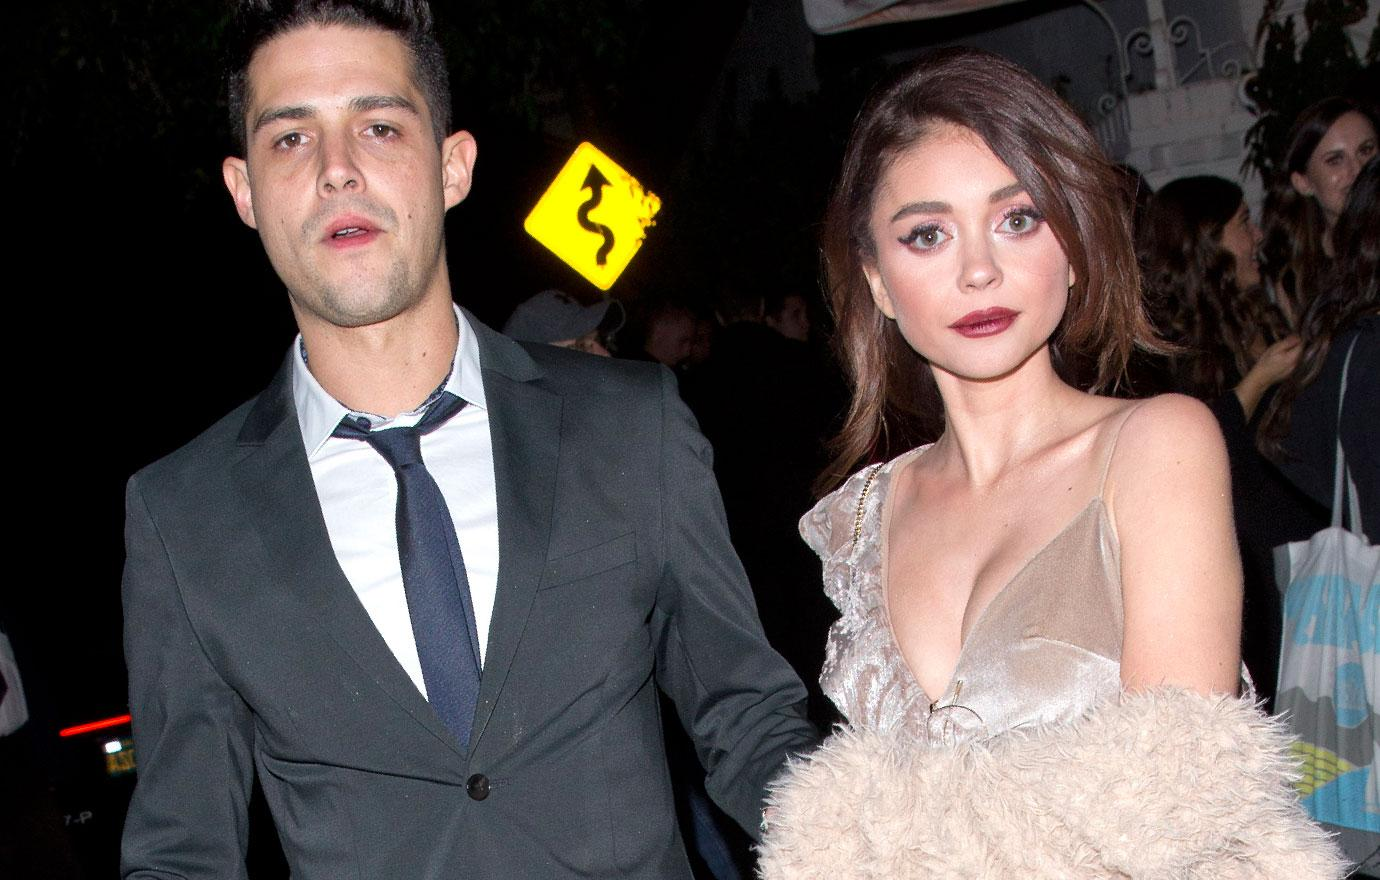 Sarah Hyland Sparks Fears Over Emotional Instagram Plea